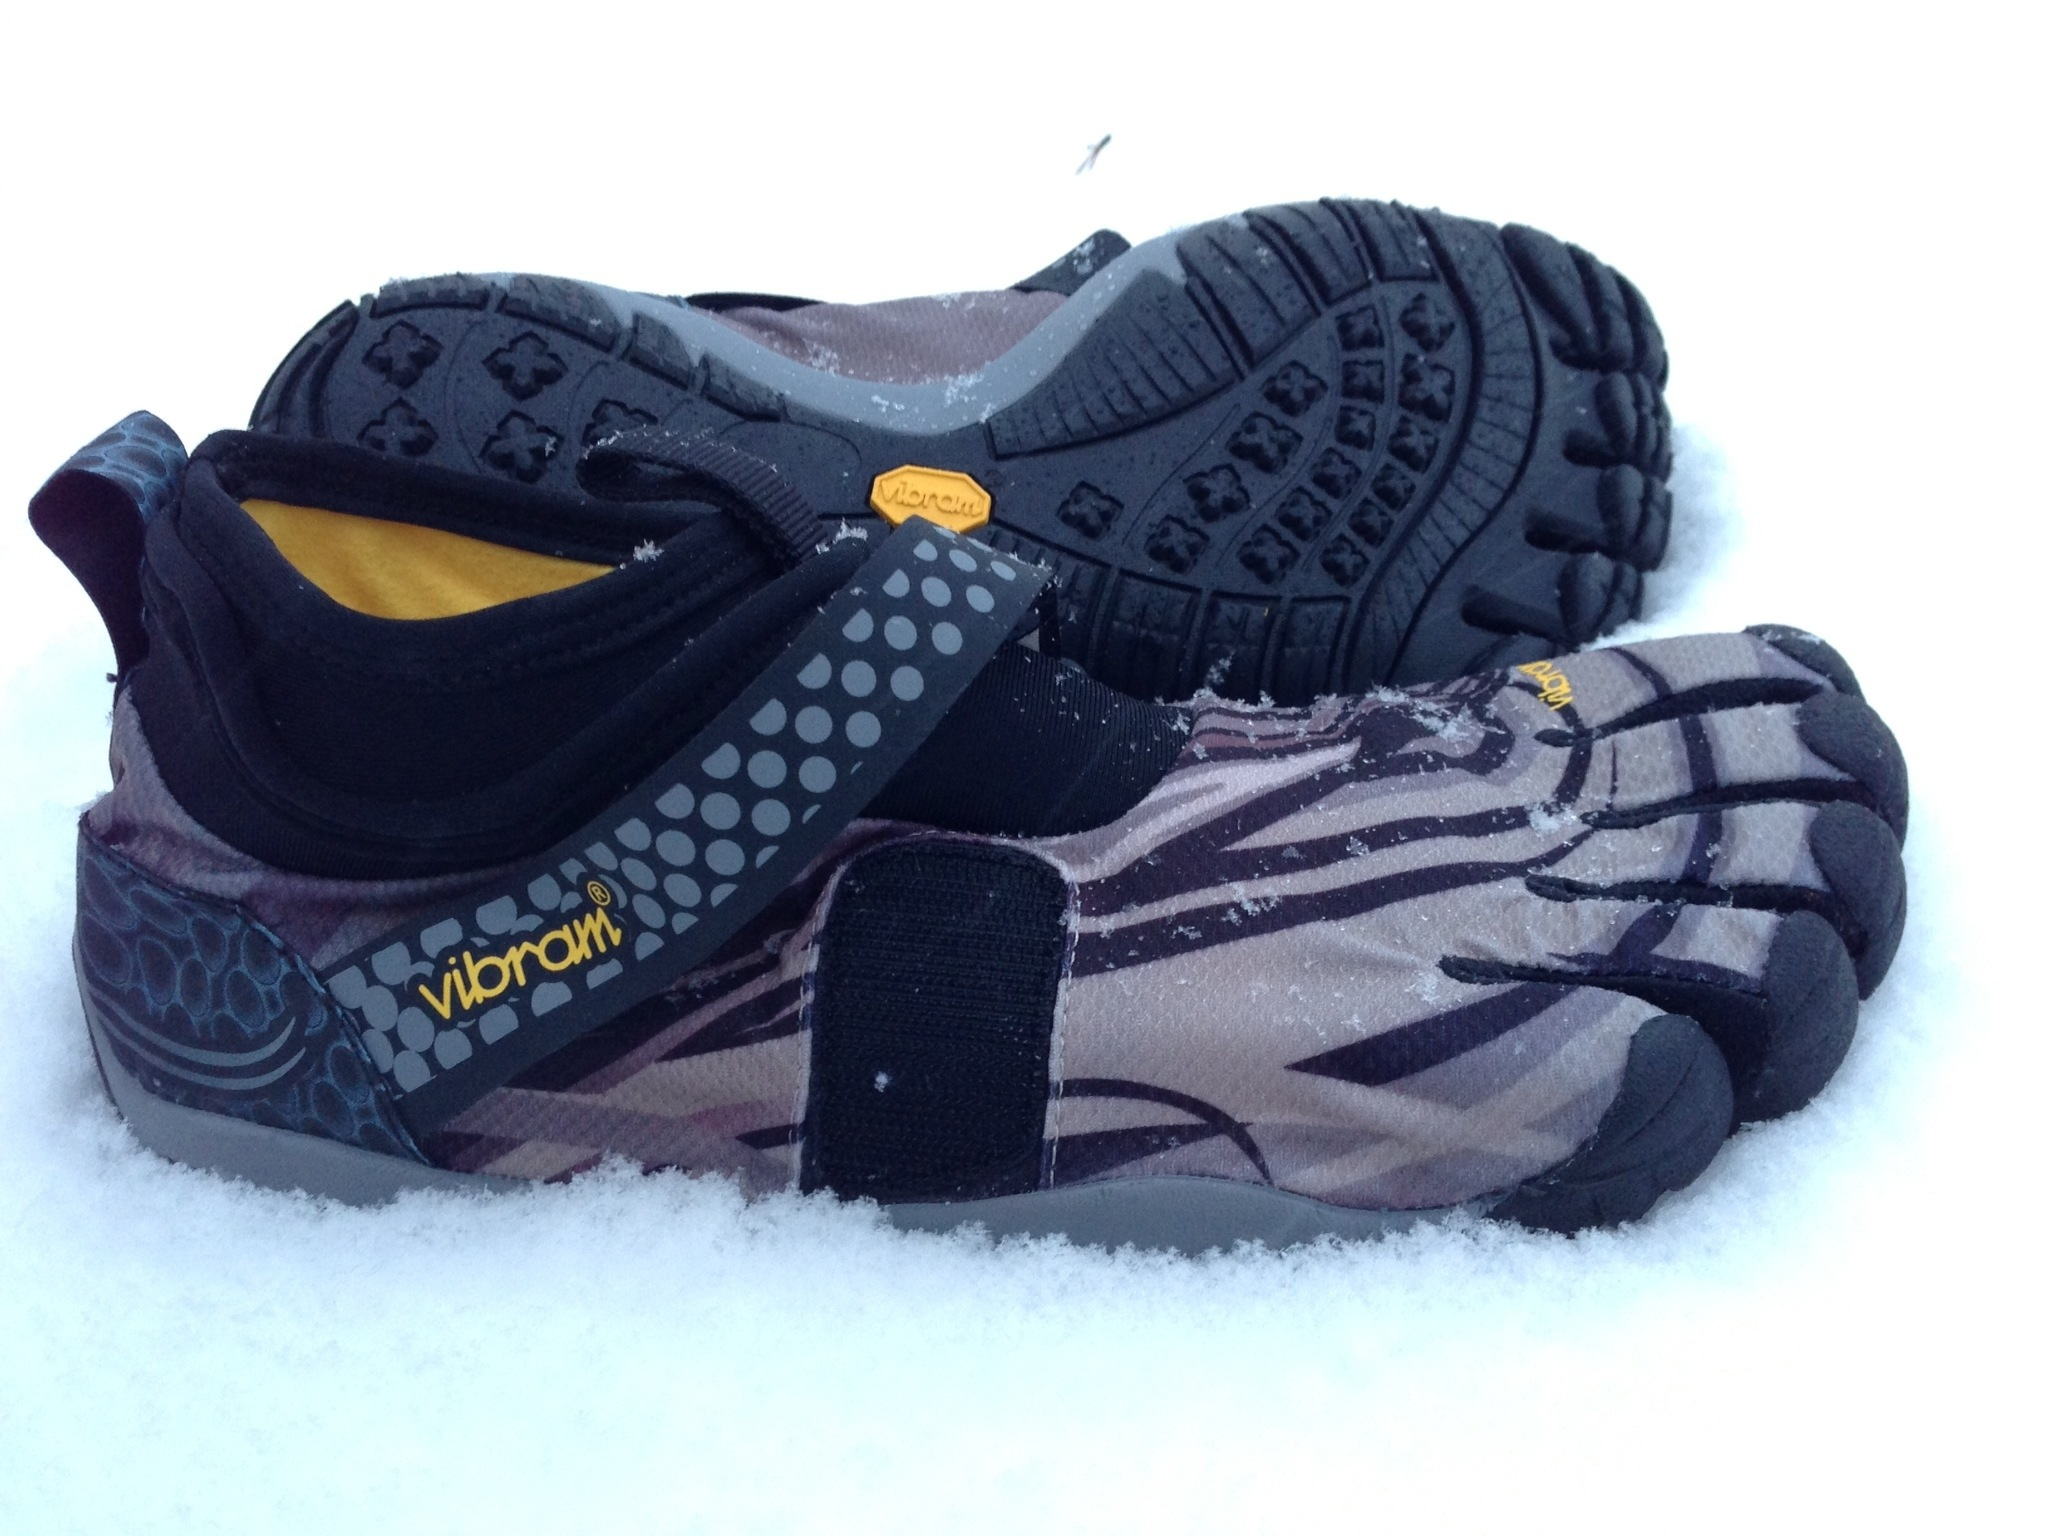 Snow Proof Running Shoes